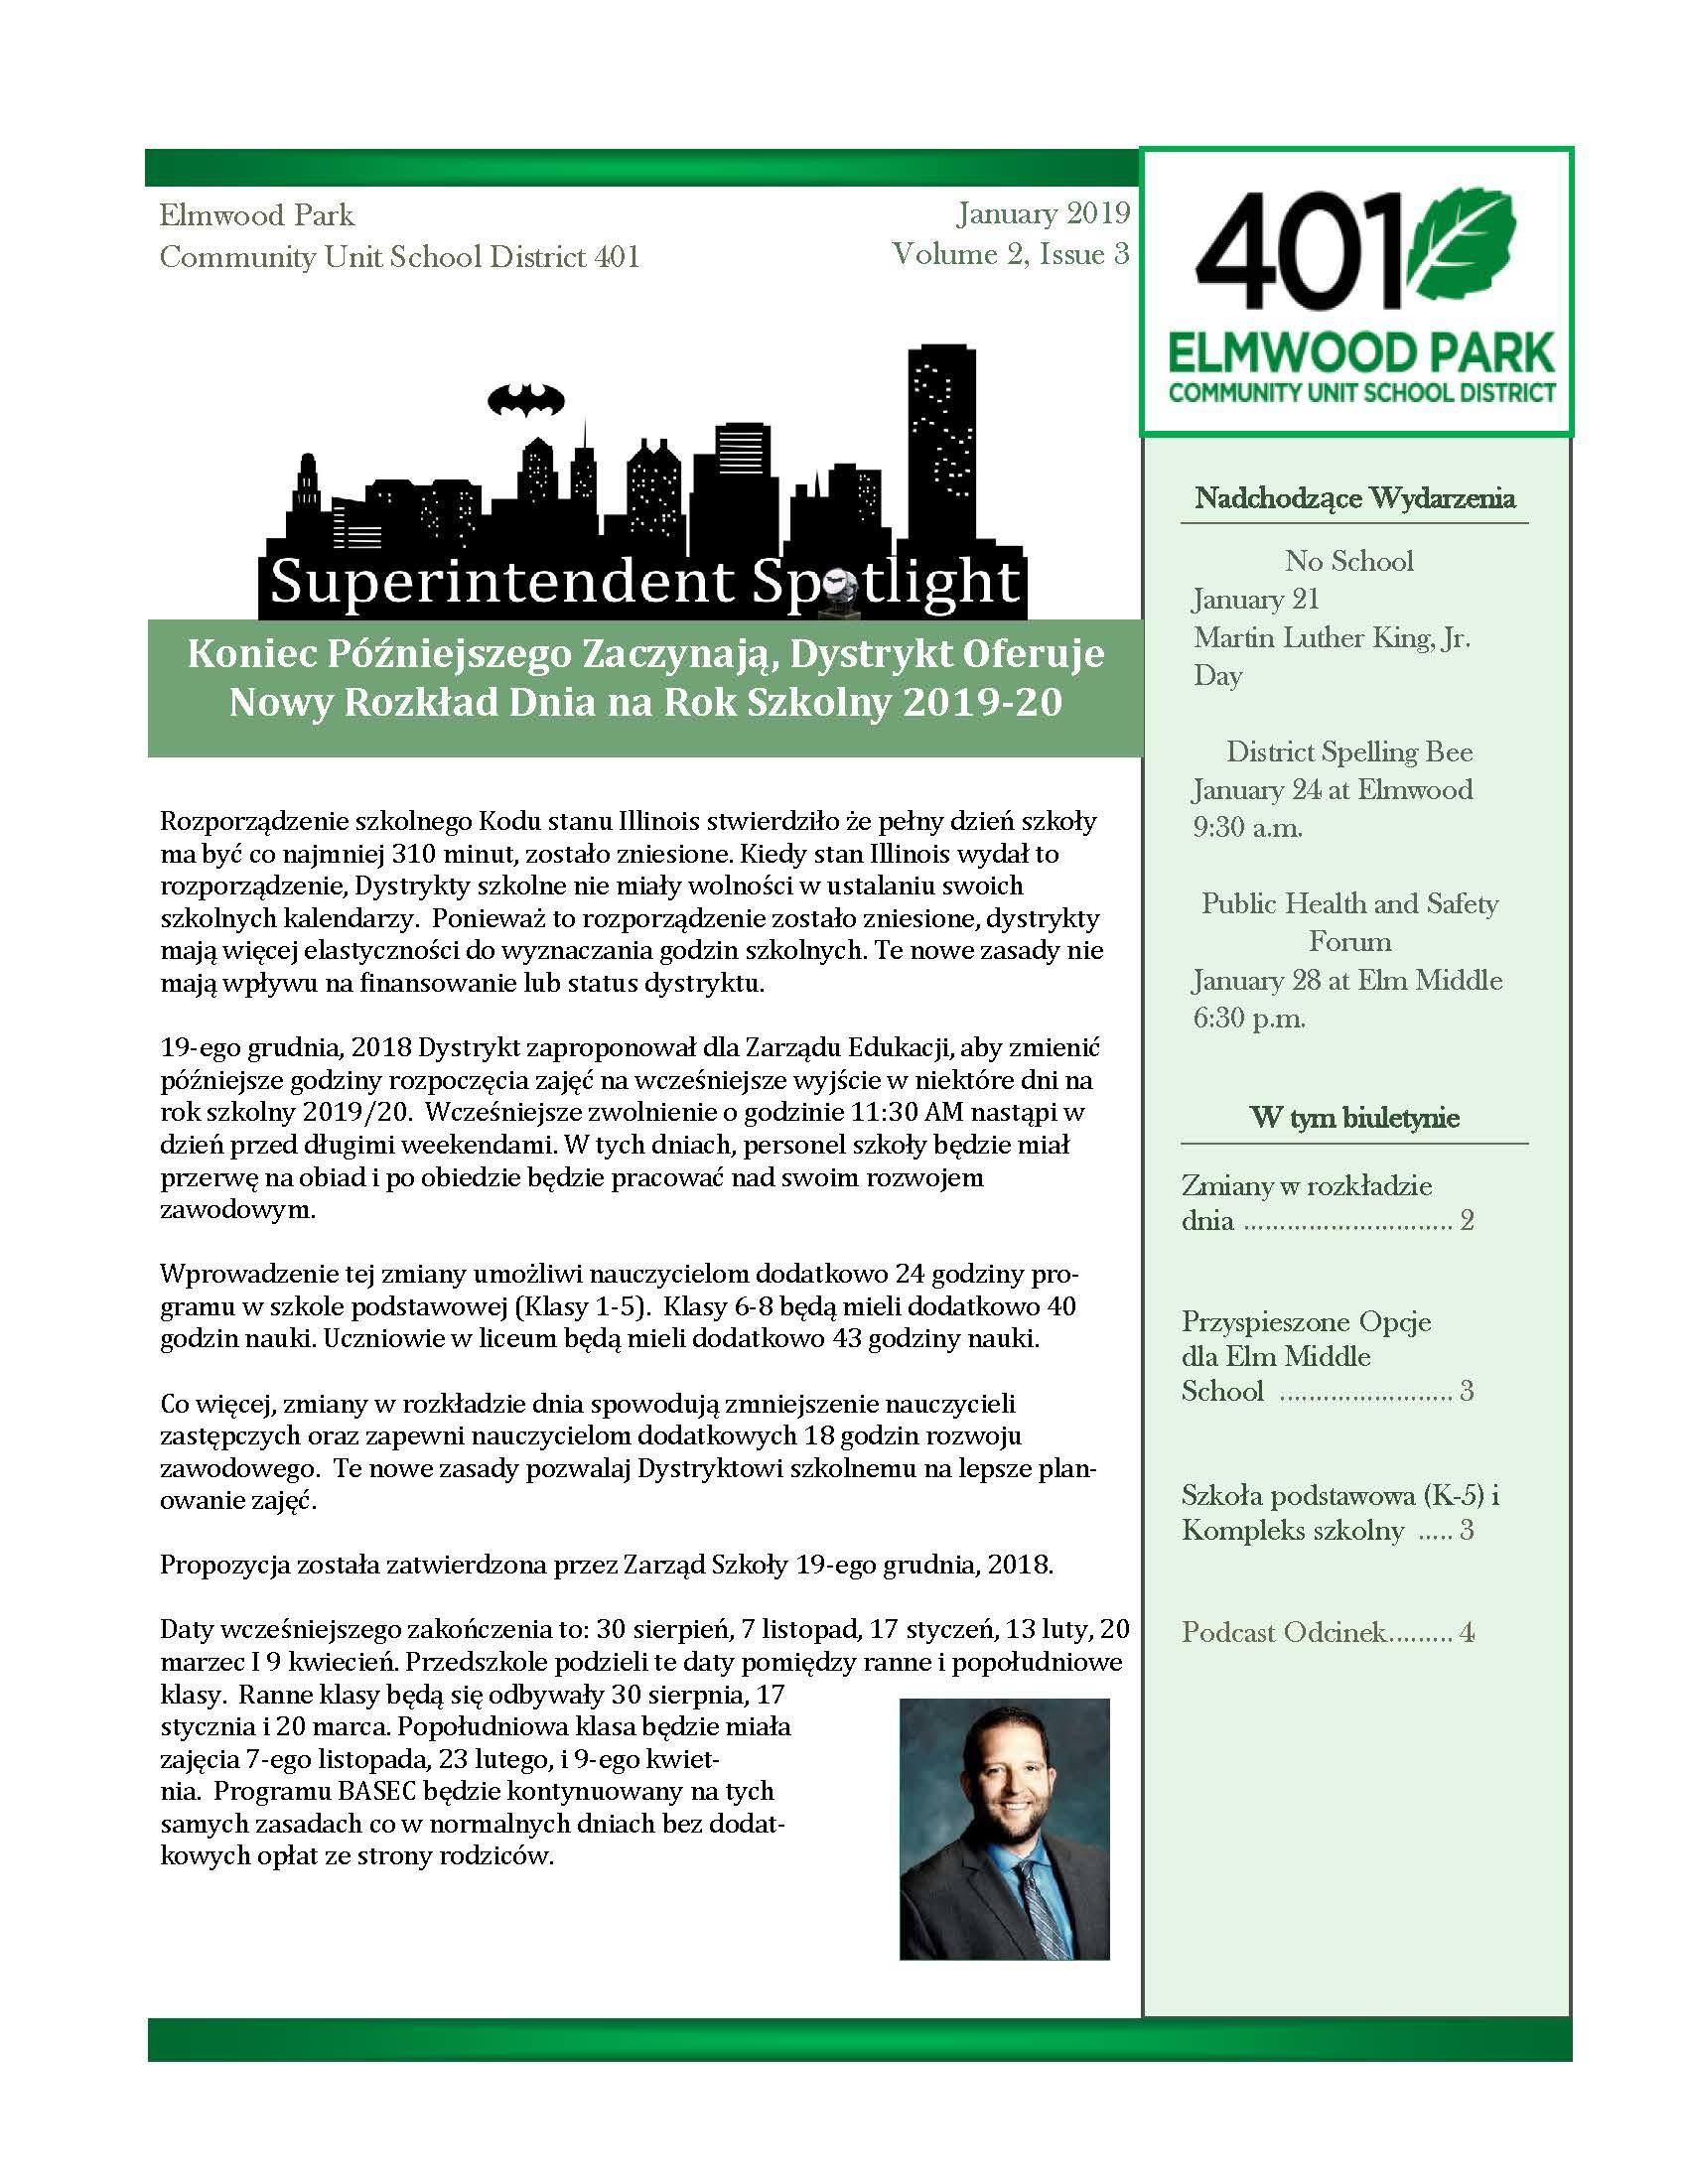 Superintendent Spotlight, Polish edition, January 2019 issue, page 1